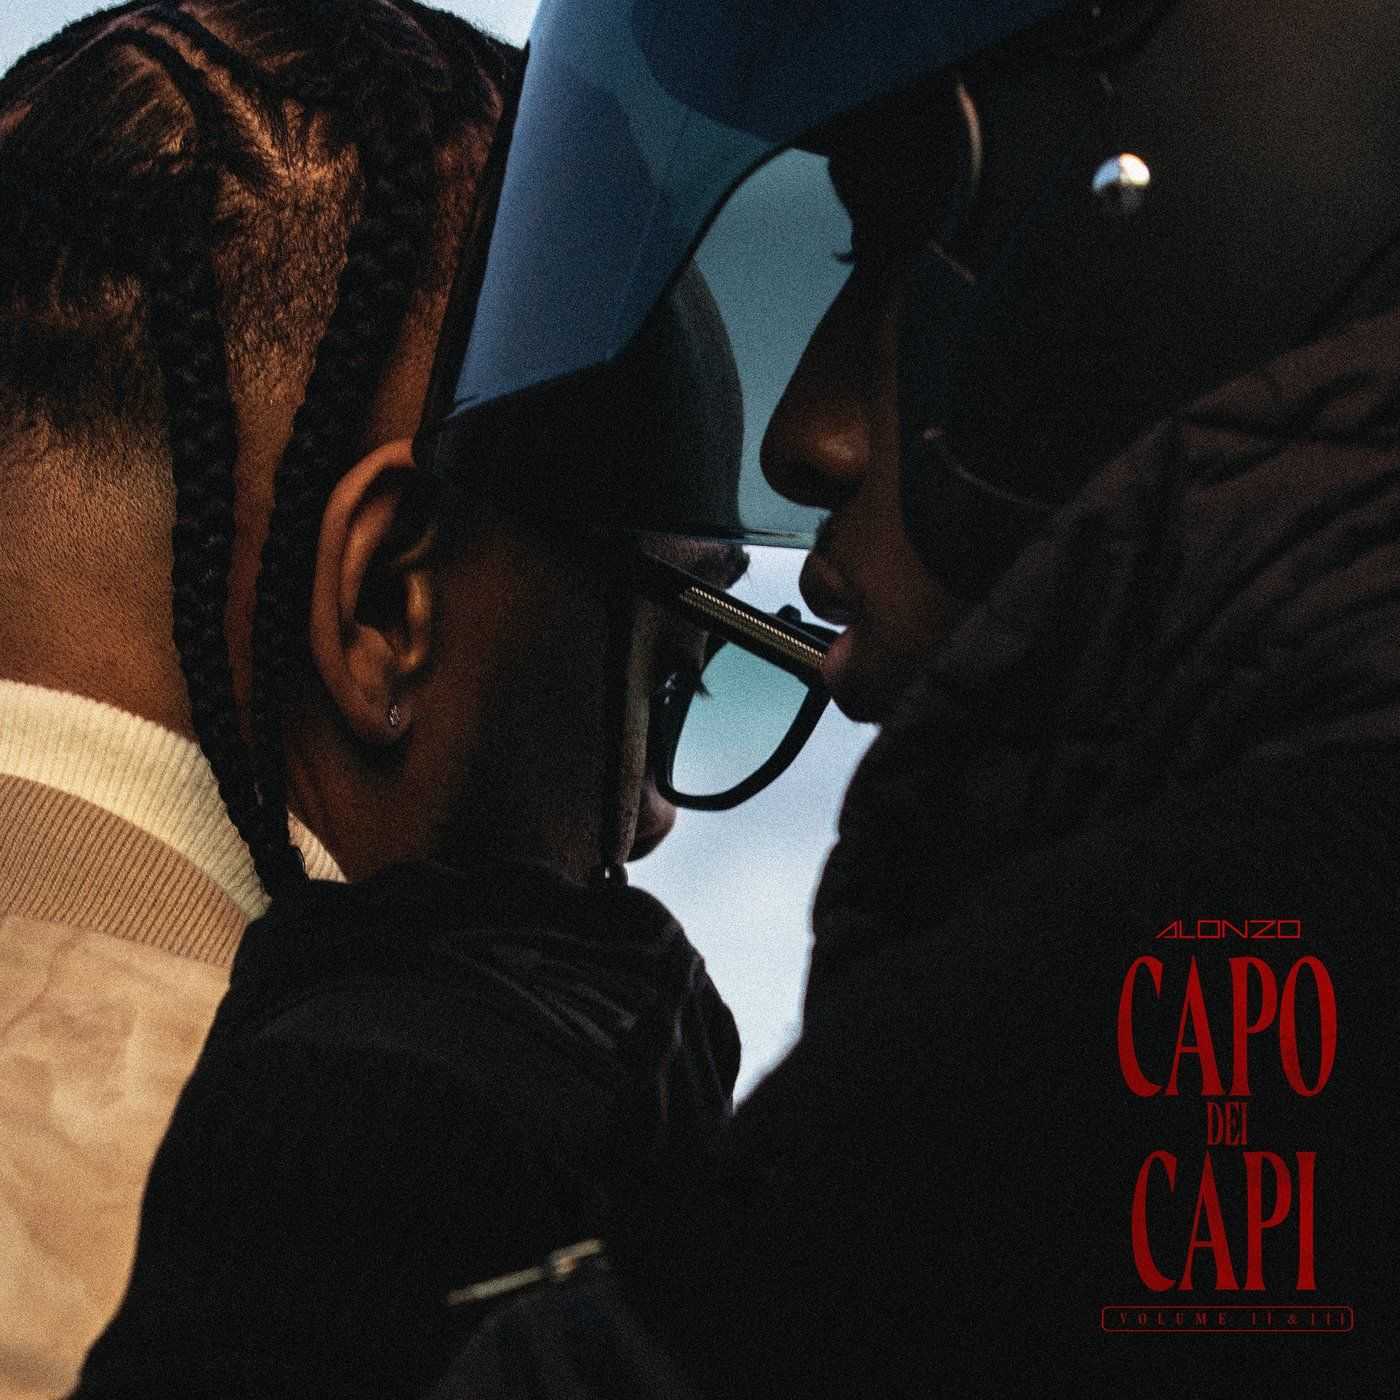 Cover Alonzo - Capo Dei Capi Vol. II et III (Explicit) album